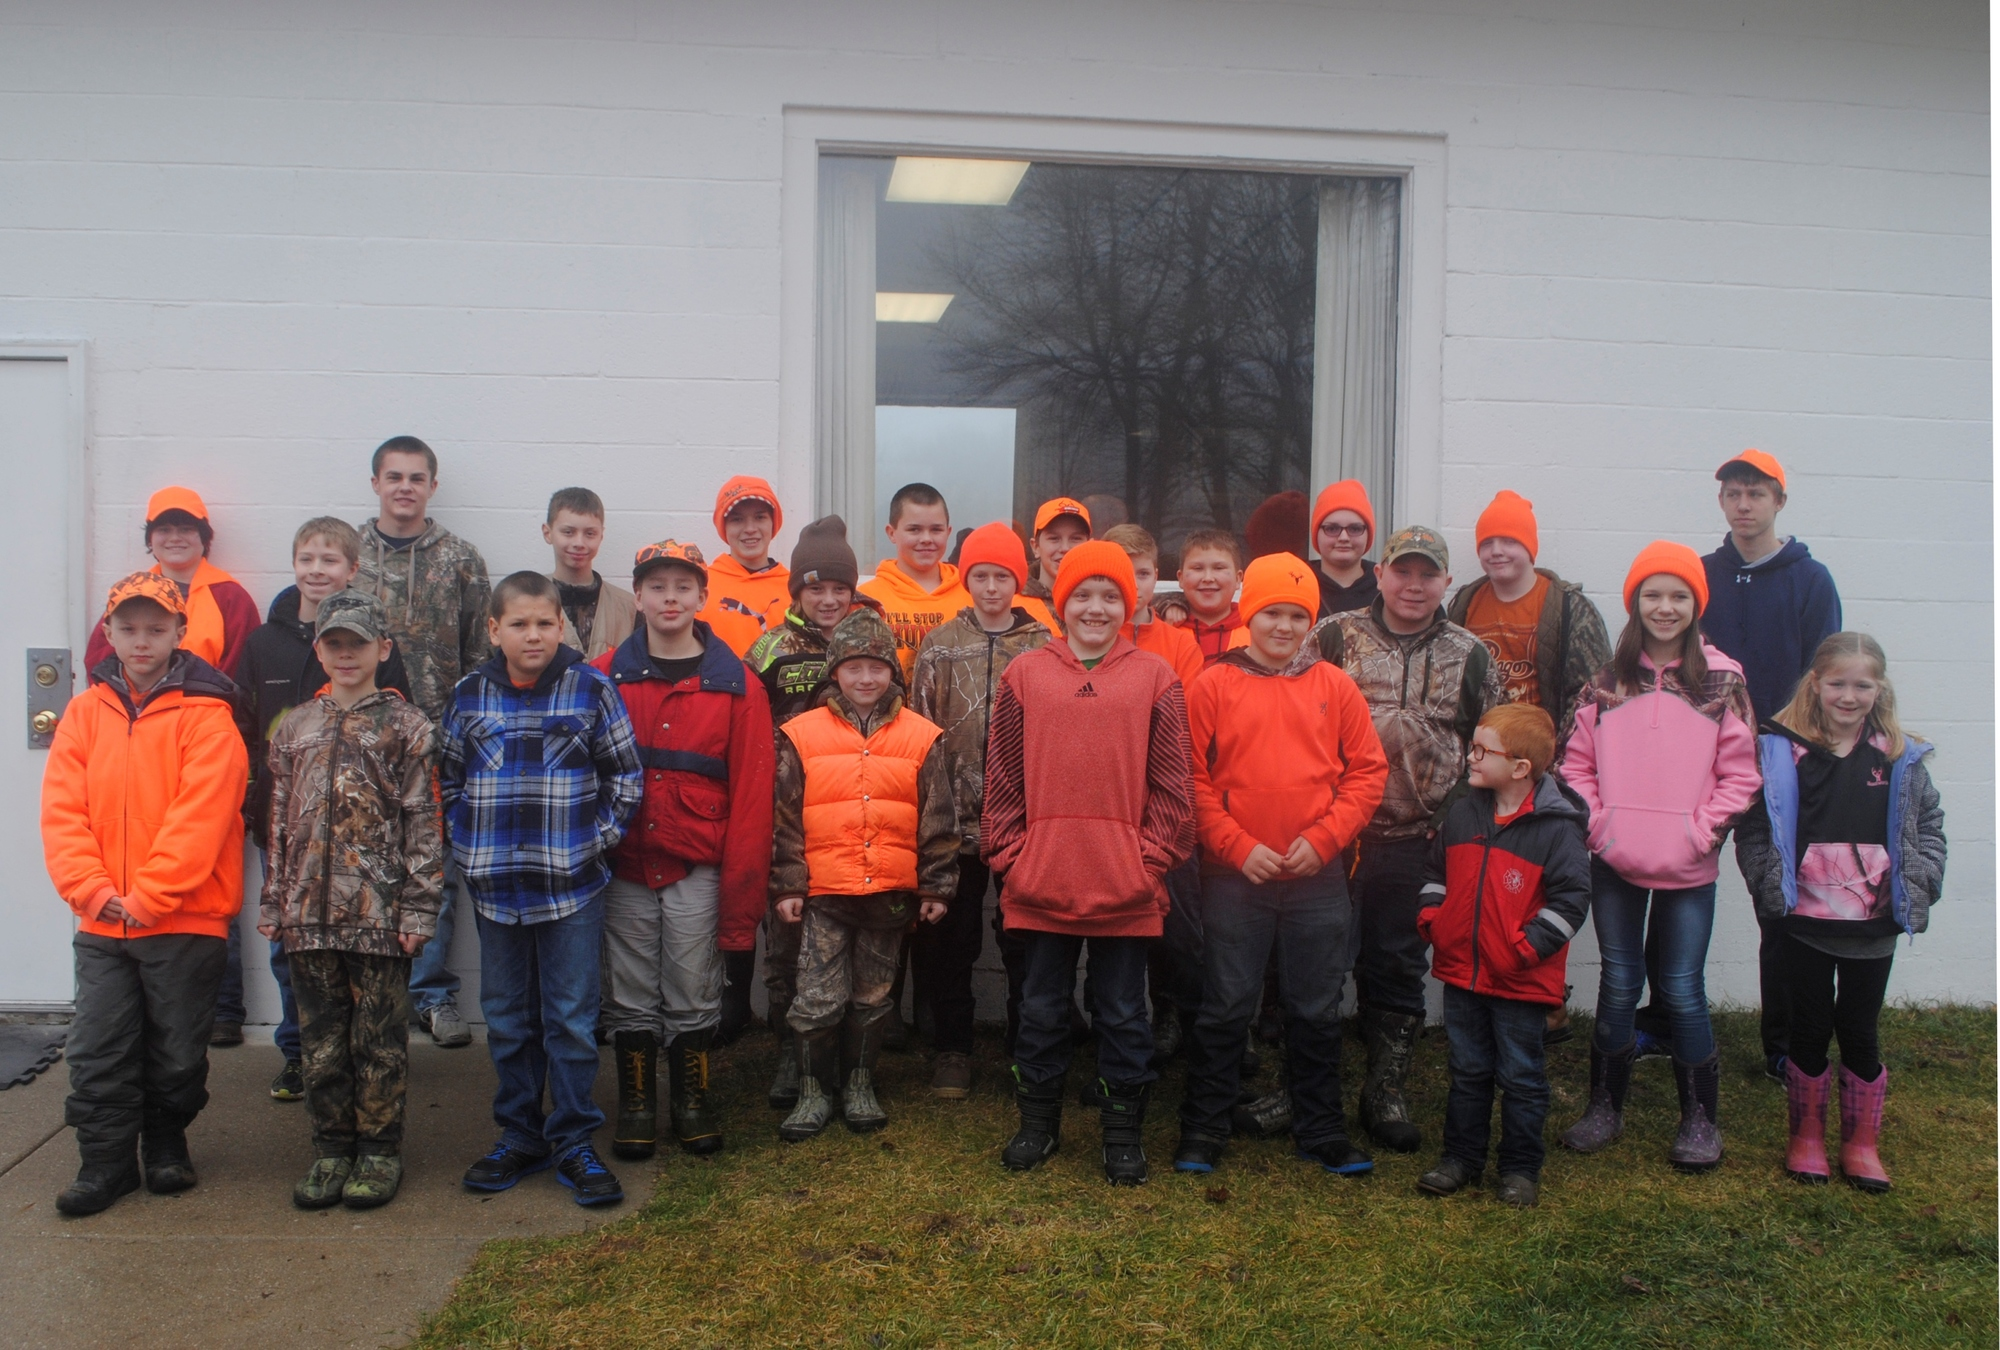 Some of the kids who participated in the youth hunt at Flat River State Game Area near Belding, which is located northeast of Grand Rapids.